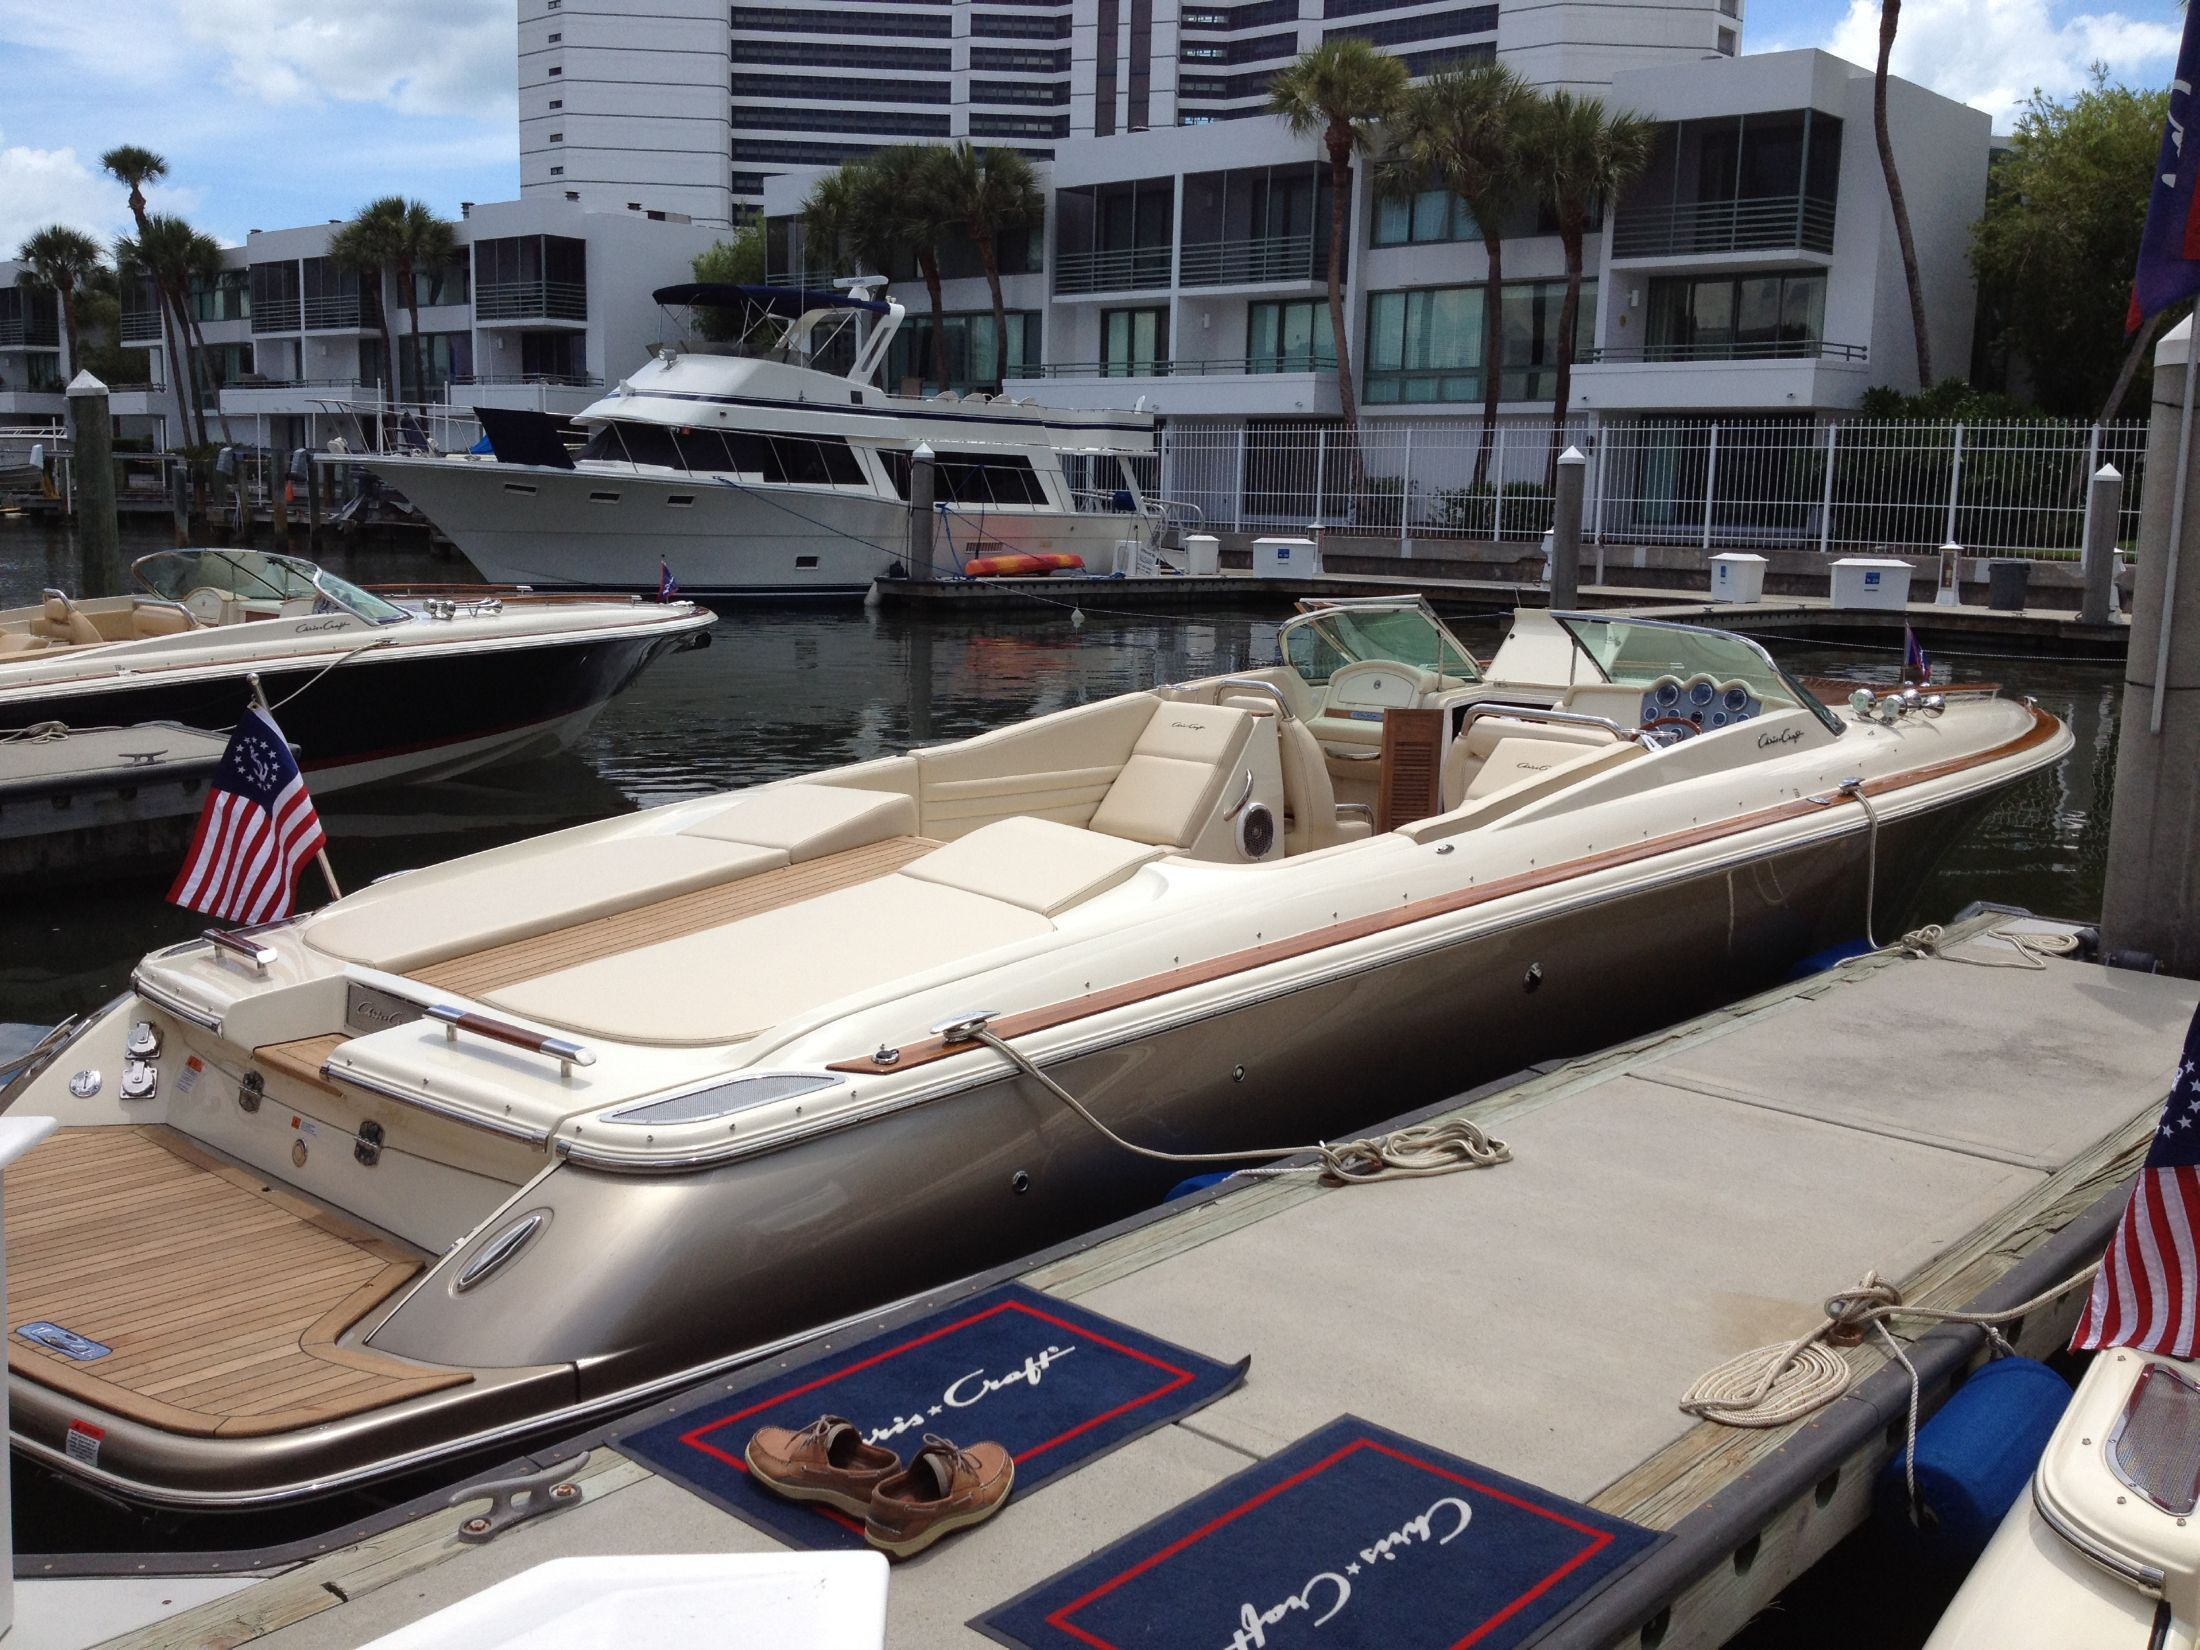 2017 chris craft 32 corsair power boat for sale www for Chris craft corsair 32 for sale